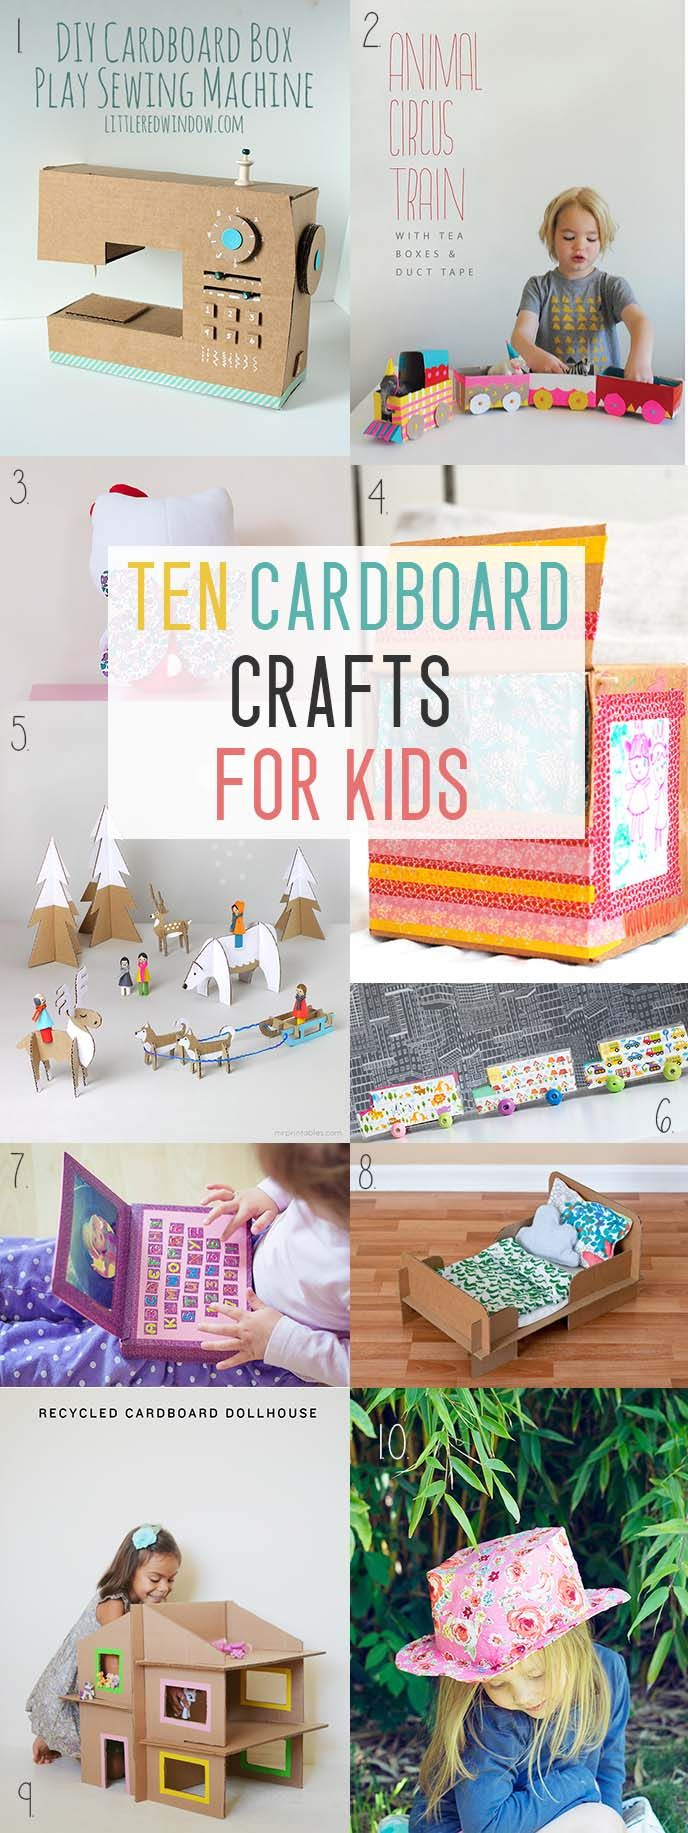 10 Cardboard Crafts For Kids. I love crafting with cardboard and we always seem to have some lying around so I much prefer to make something with it instead of throw